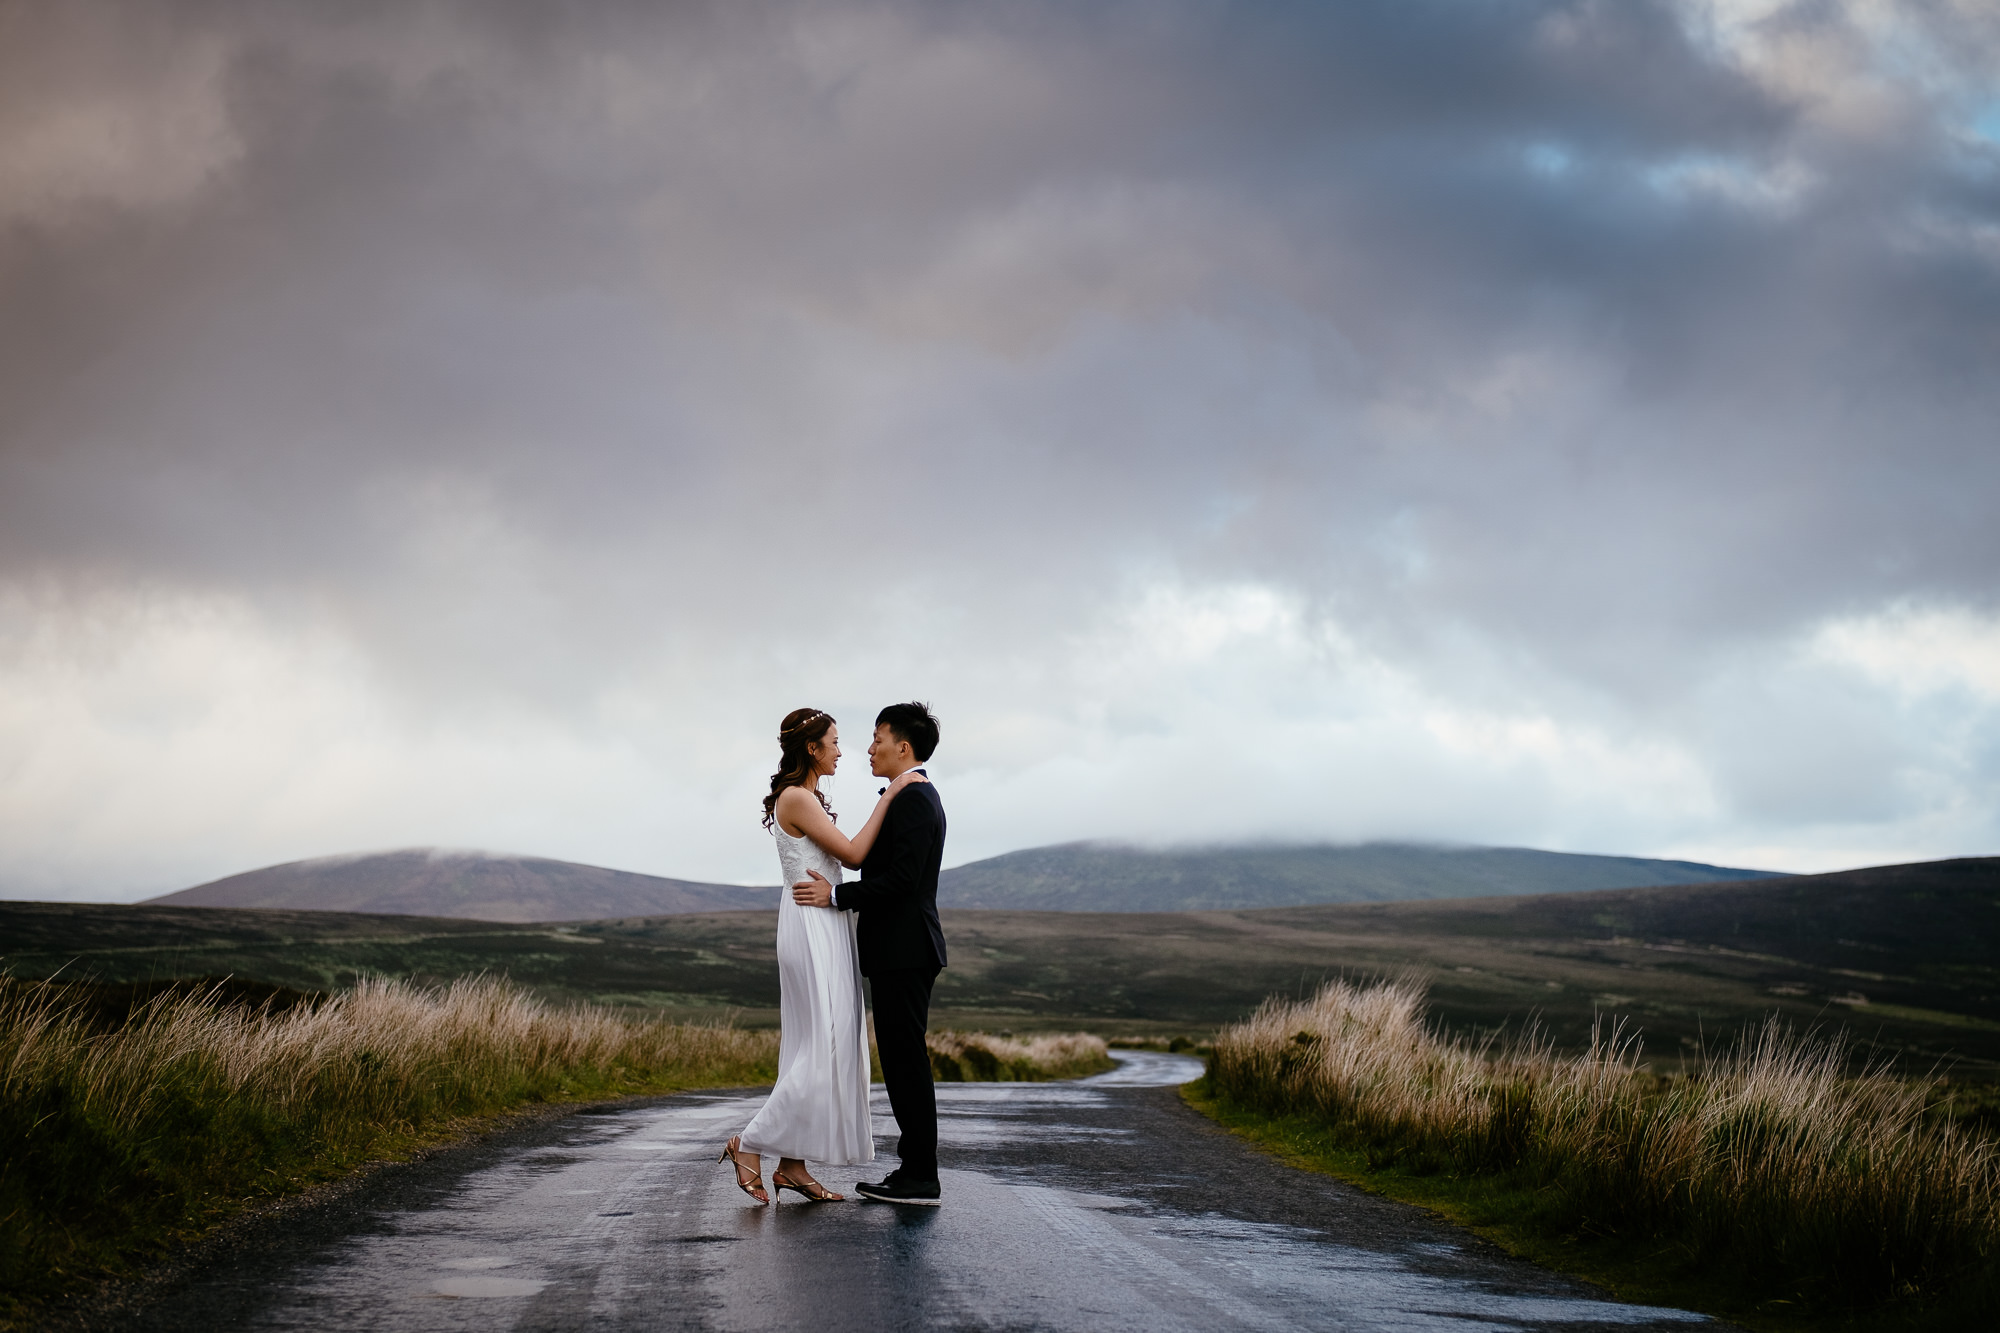 engaged couple hugging on a deserted road in irish mountains